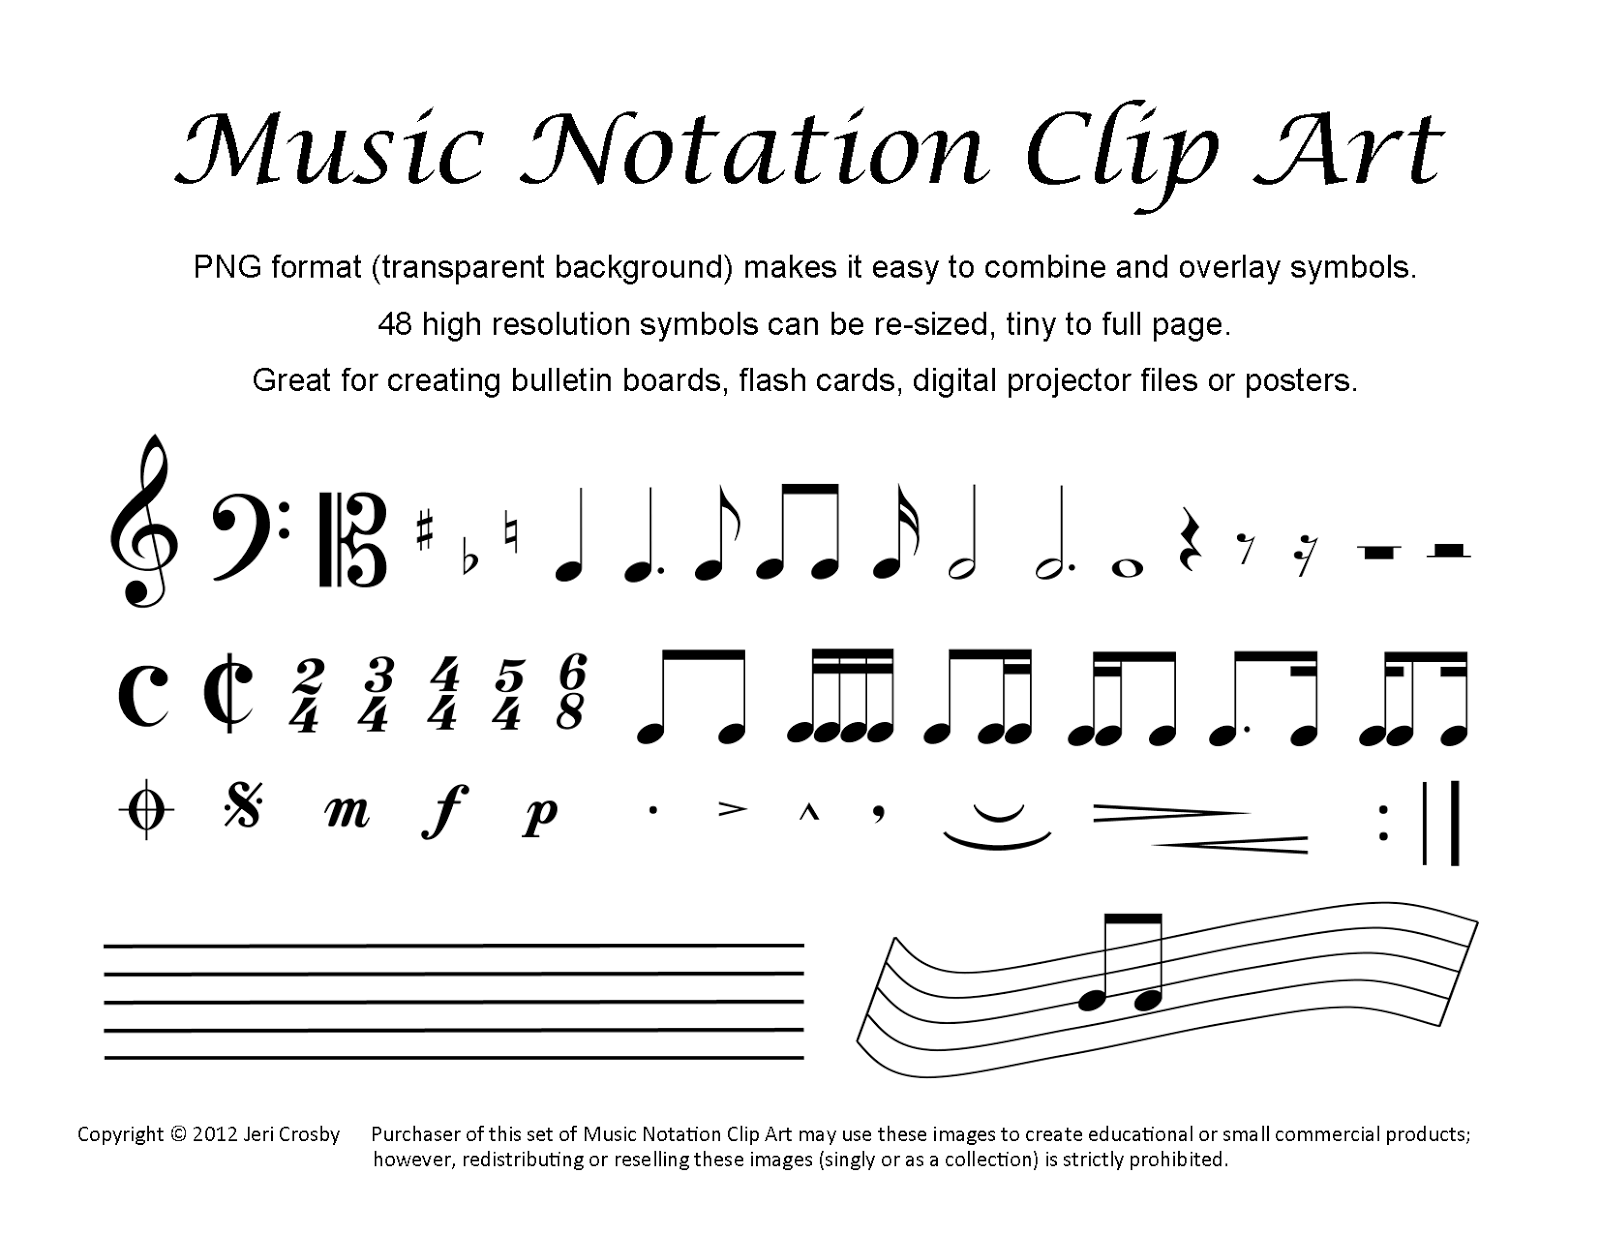 musical notation and holidays homework Get help with your music theory this site is designed as a resource for music theory students to increase their understanding of music theory, and to enhance their ability to quickly translate this knowledge to the keyboard and into musical notation.